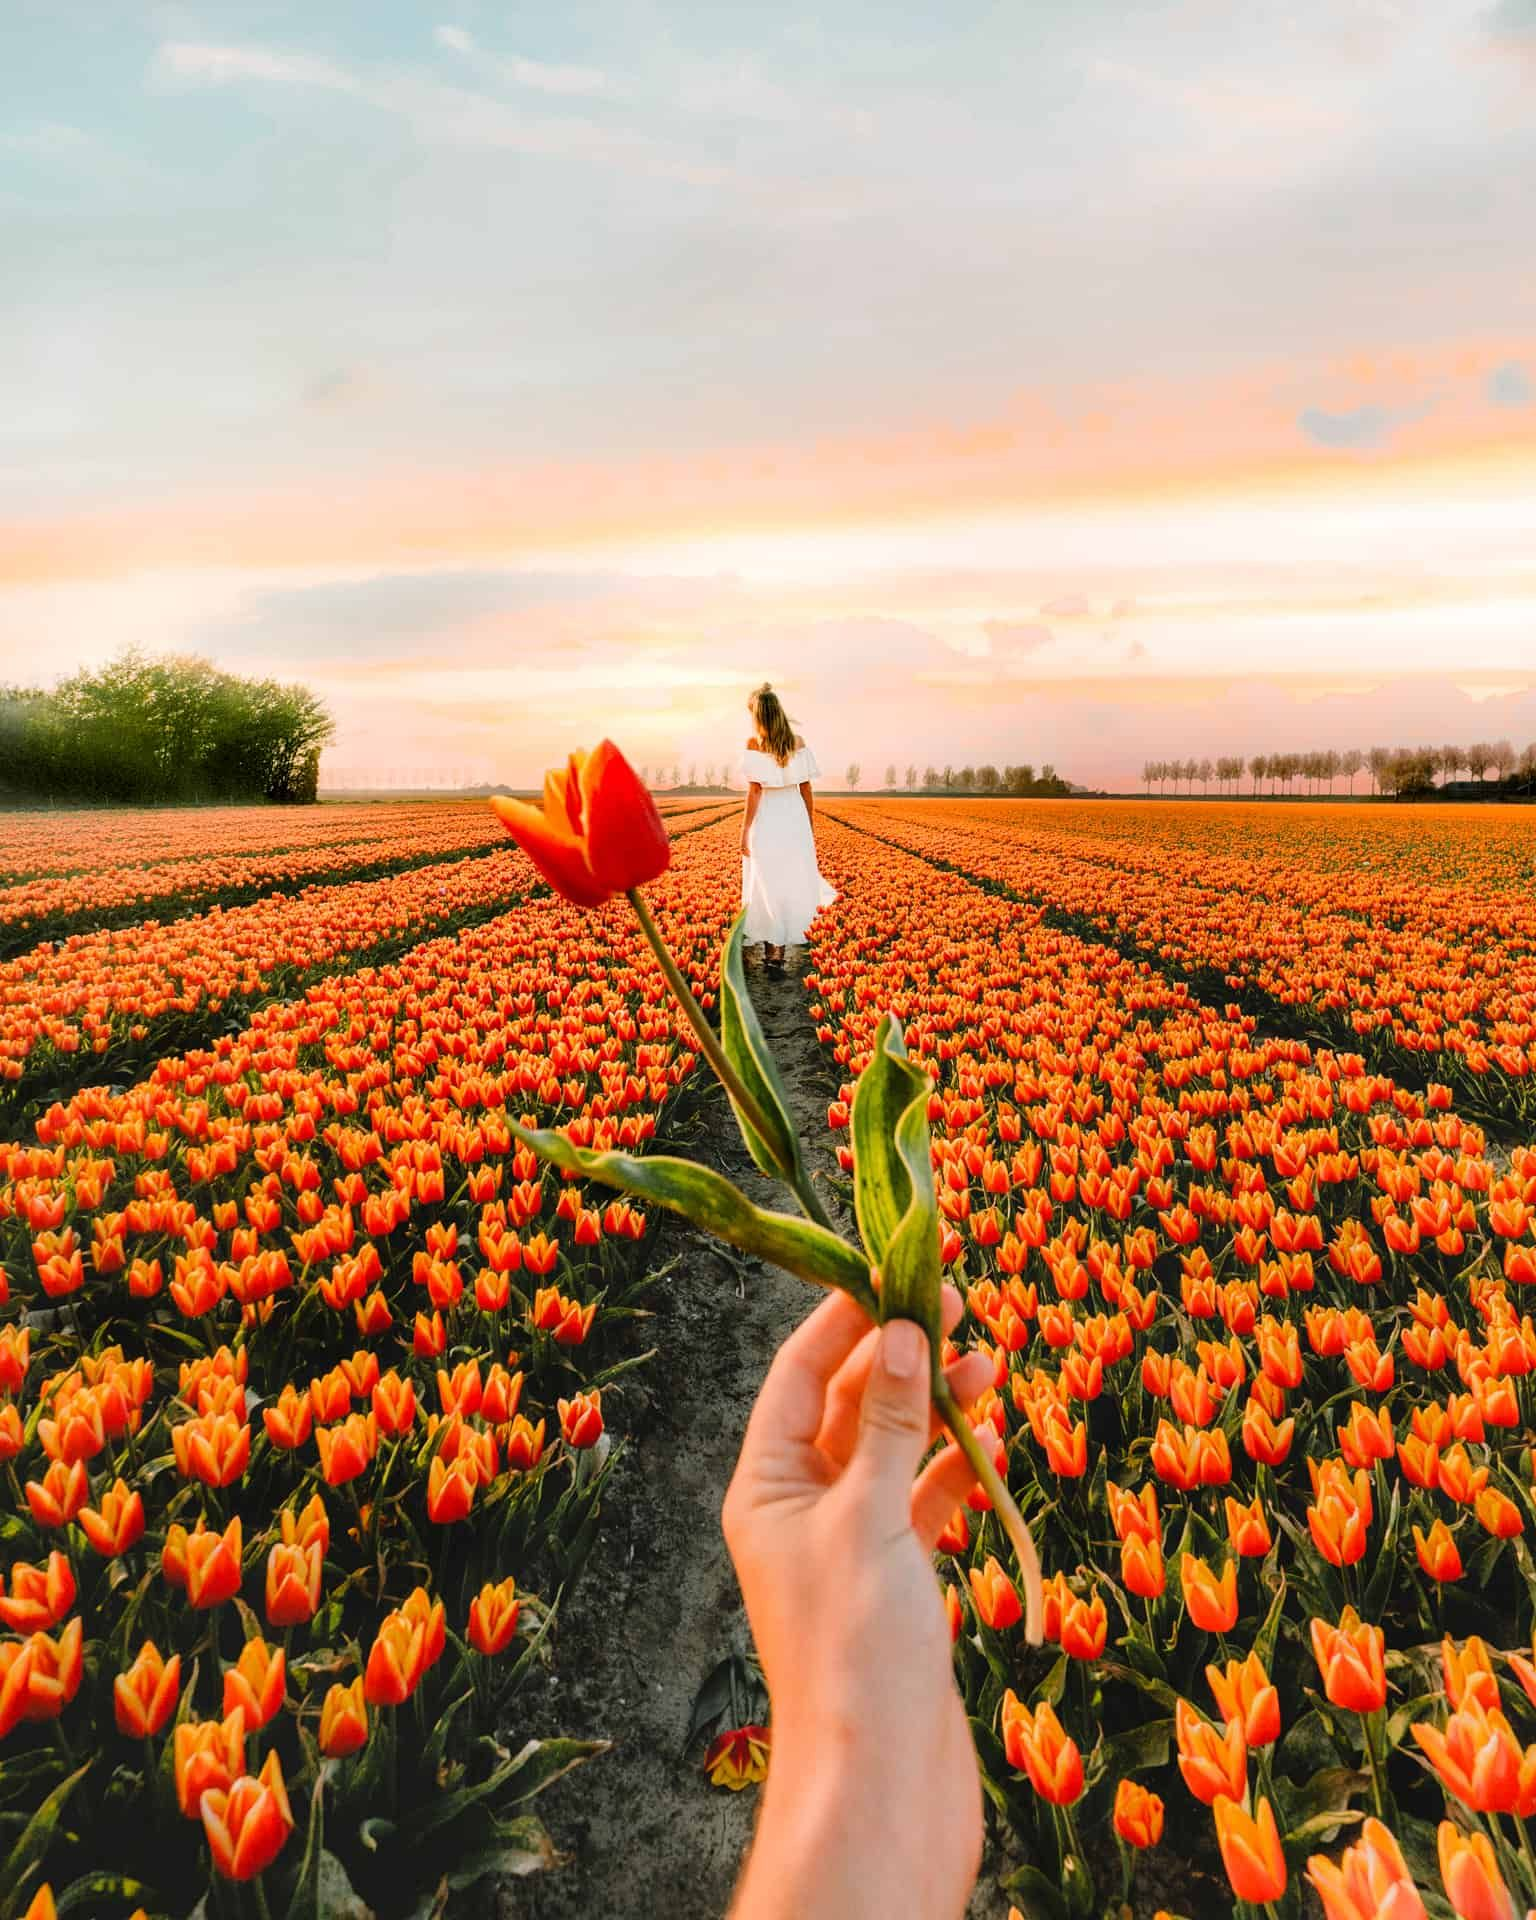 Tulips Netherlands Best Place To See Tulips In The Netherlands Tulip Fields Fields Photography Tulip Fields Netherlands